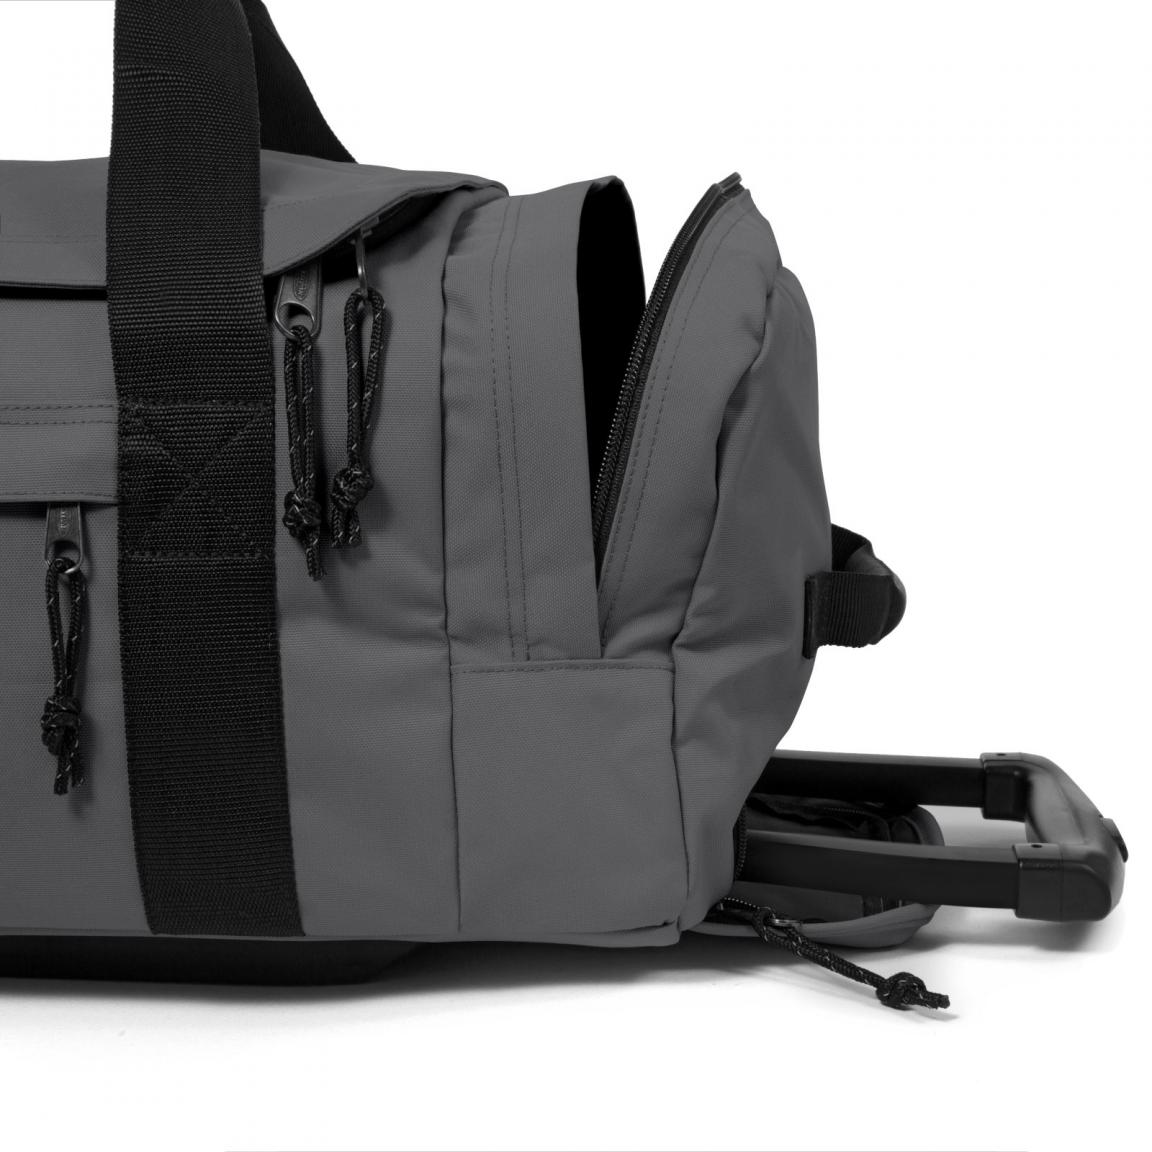 Handgepäckstasche Trolley Woven Grey Eastpak Leatherface S